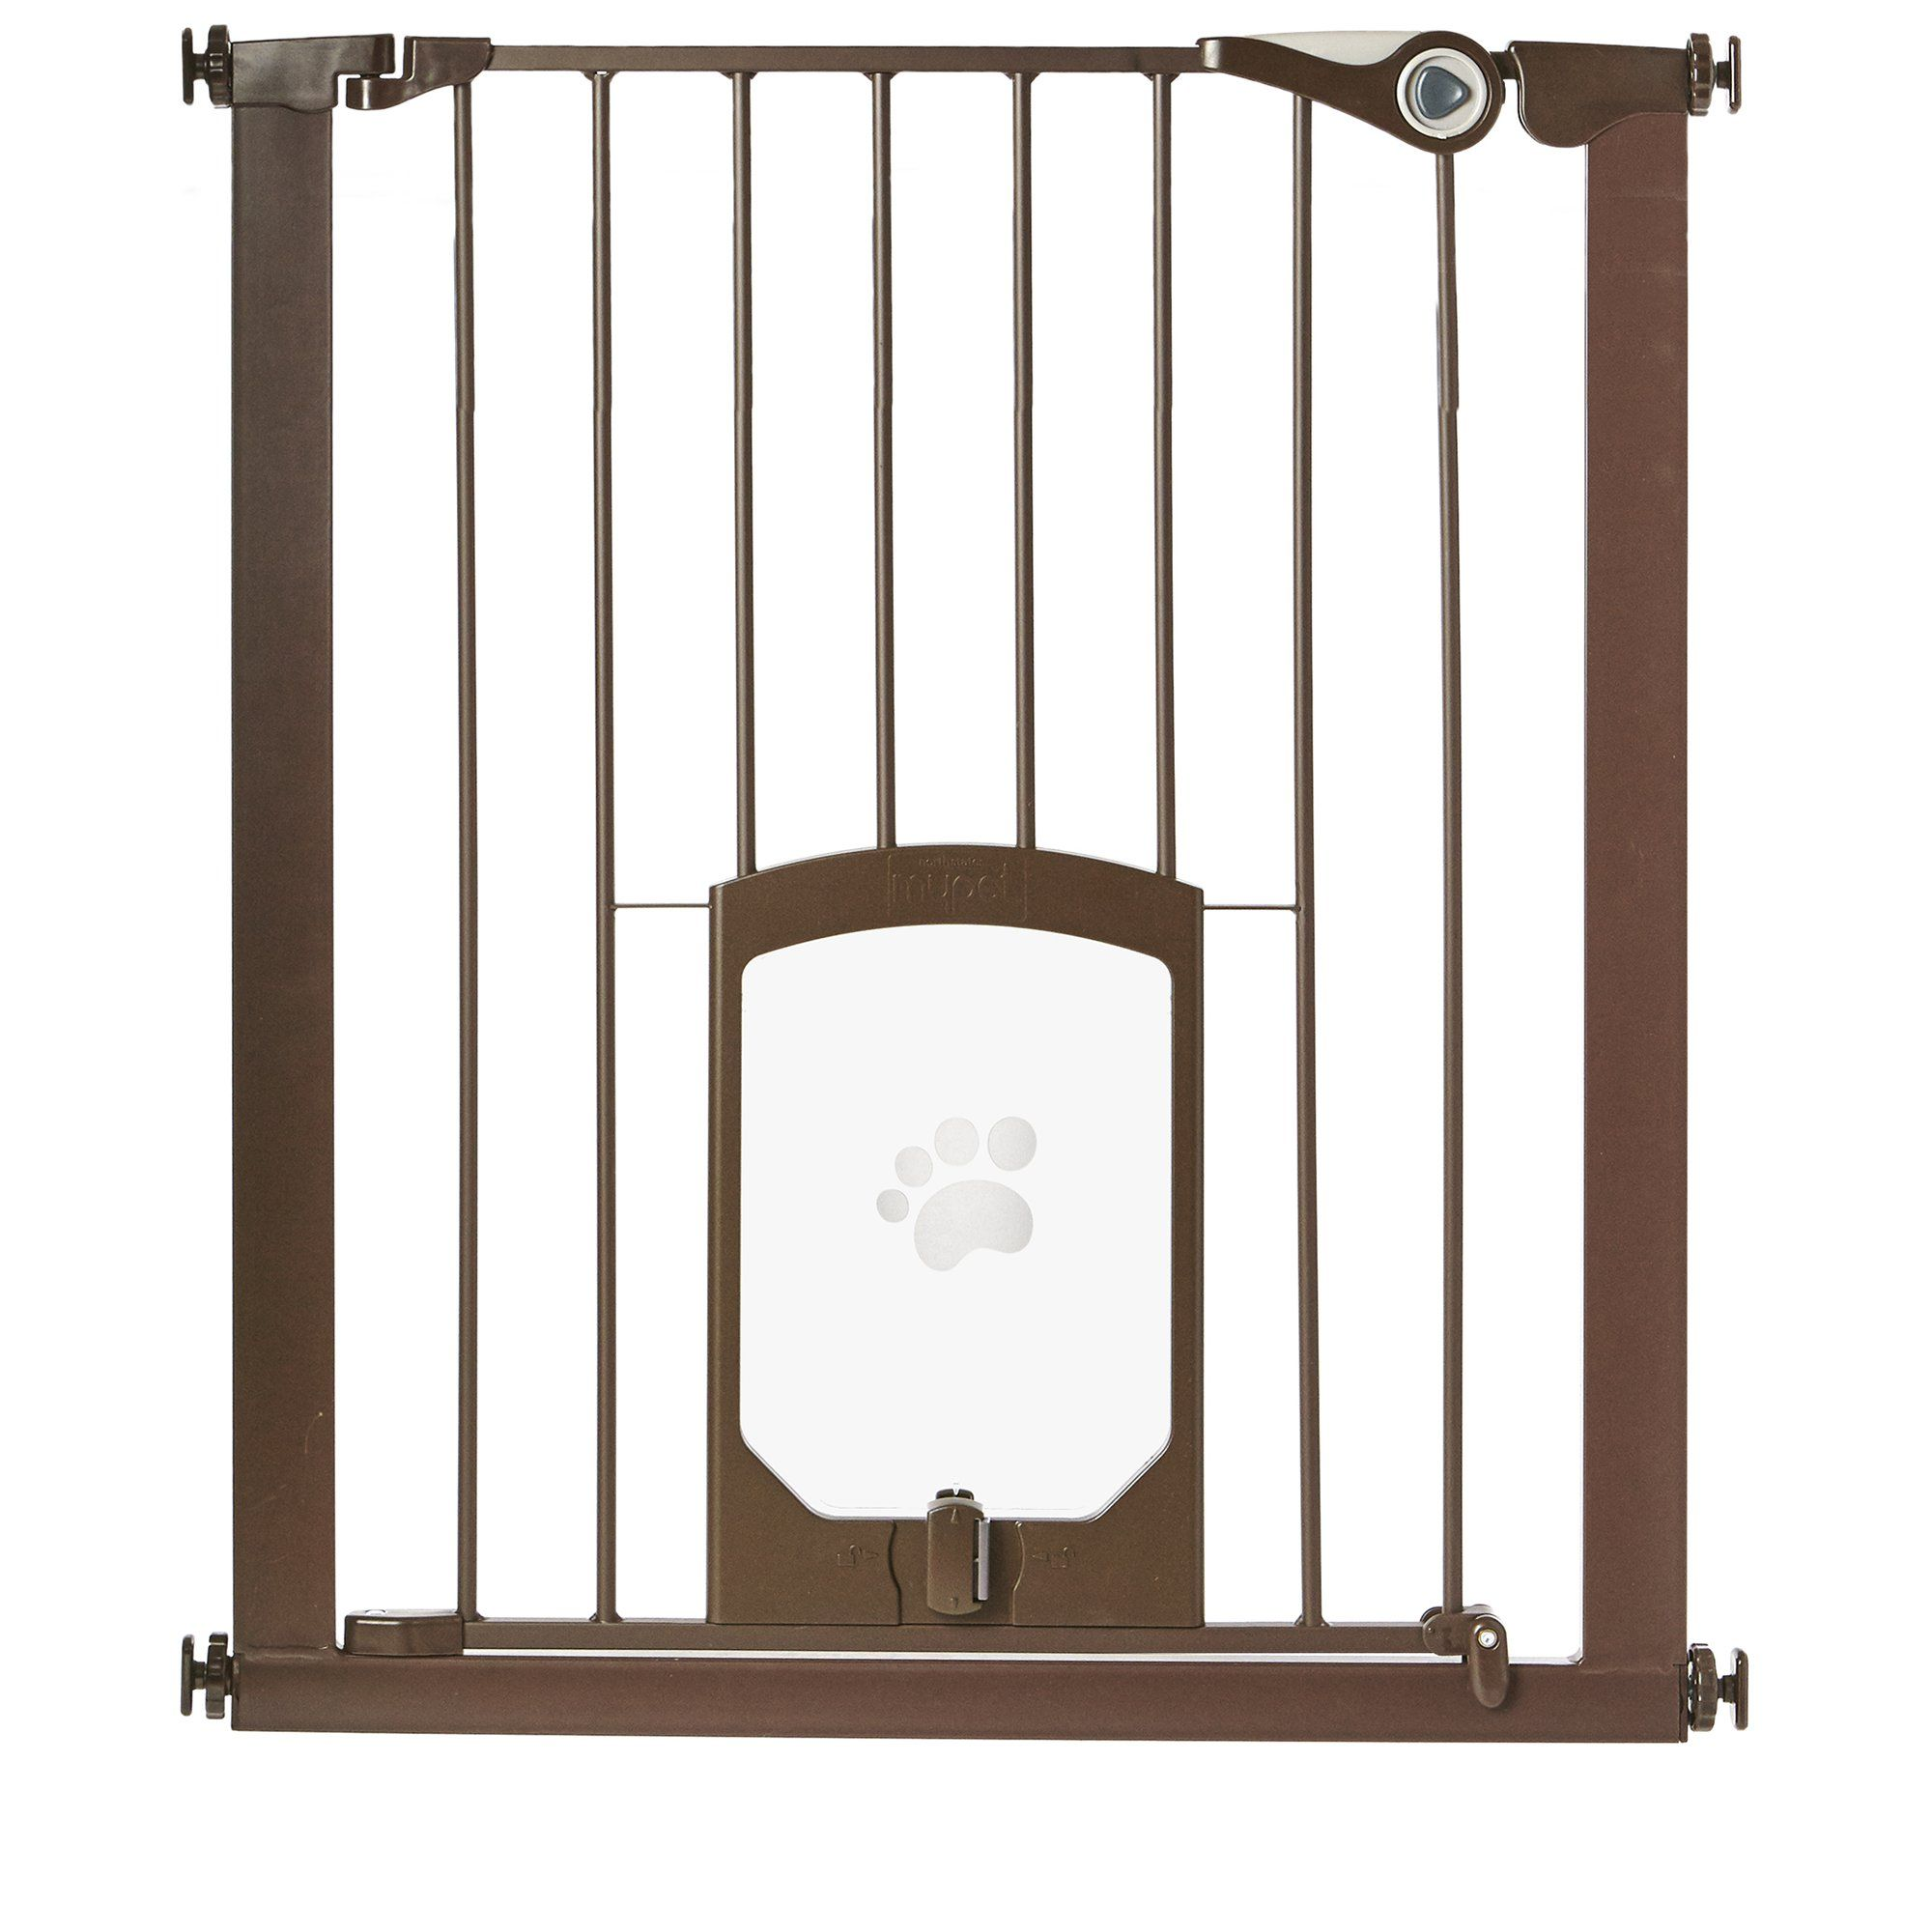 North States Tall Petgate Page Gate 29 5 50 W X 32 H